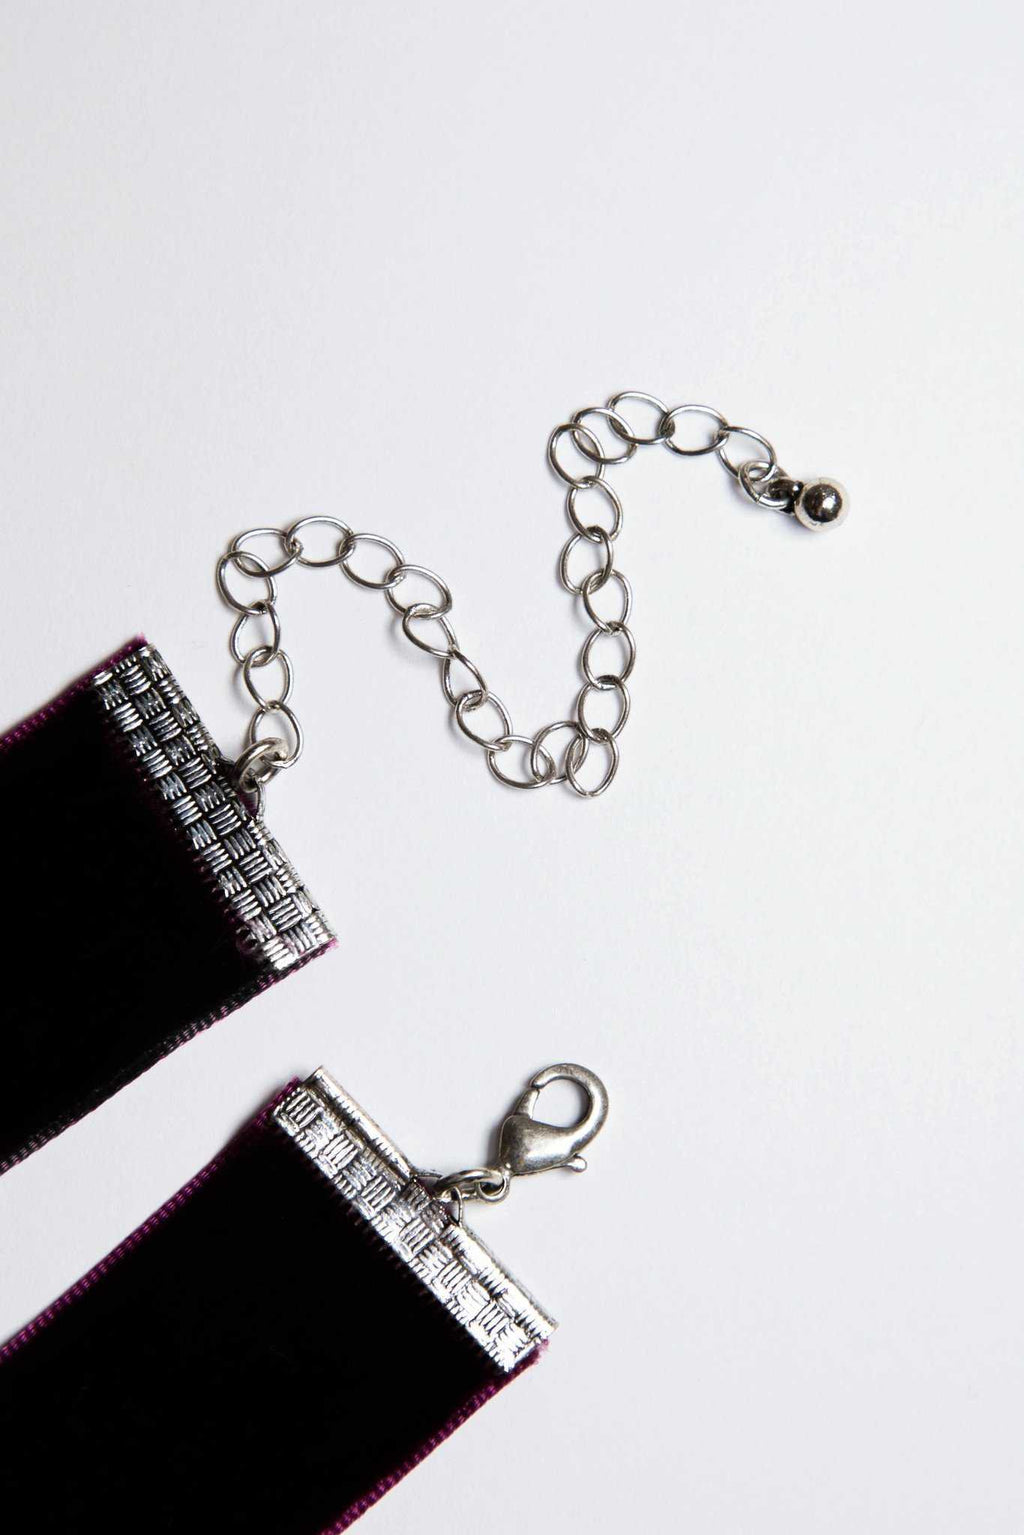 Jewelry - Analeigh Velvet Choker - Black